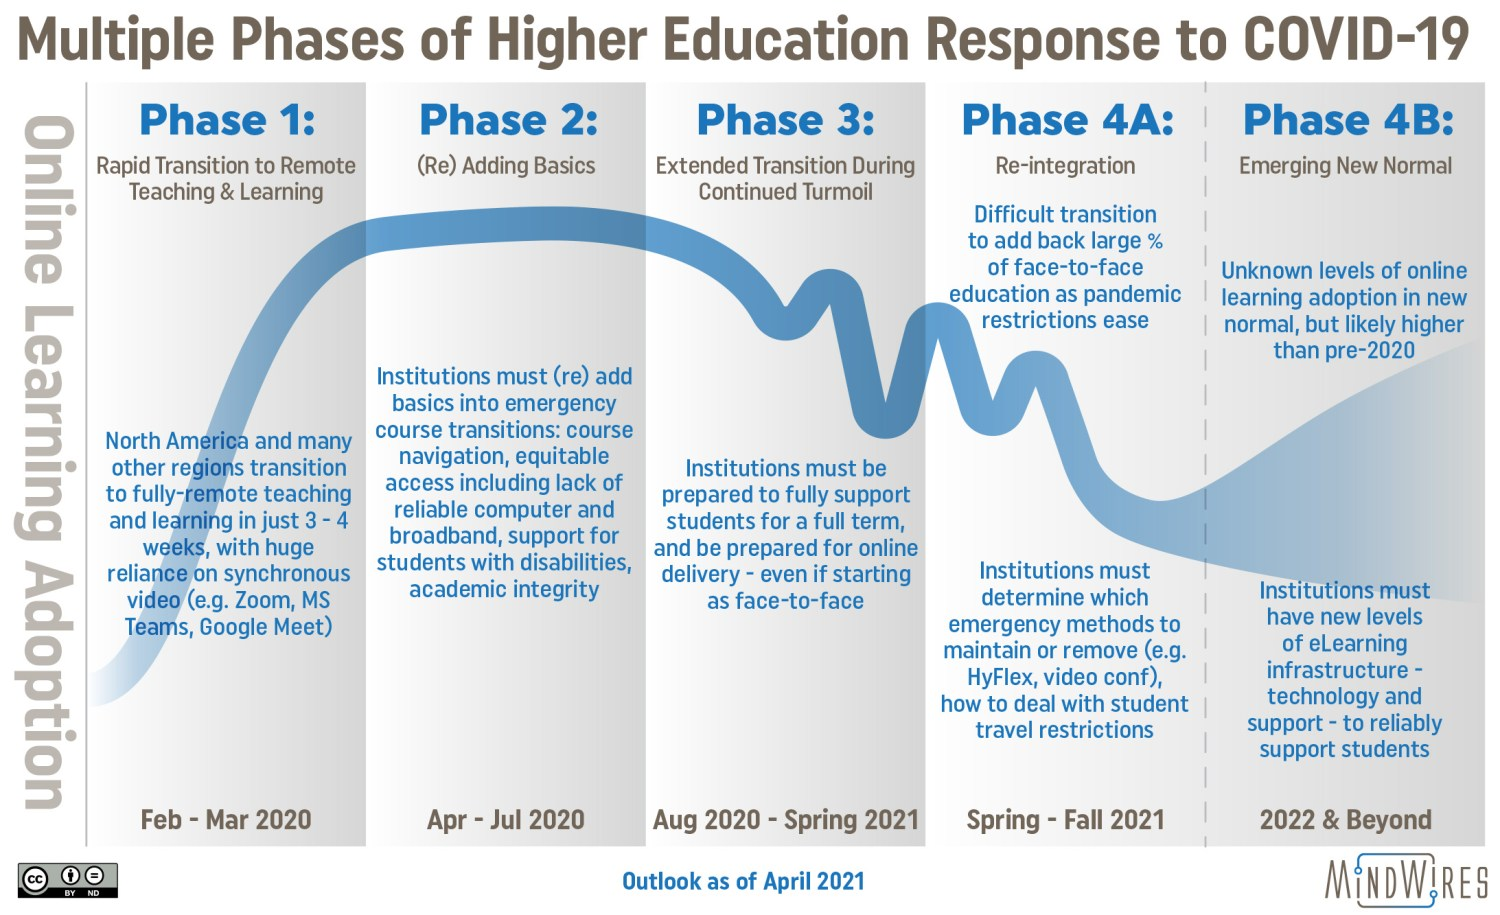 Updated graphic showing four phases of higher education response to COVID-19 in terms of online learning adoption.